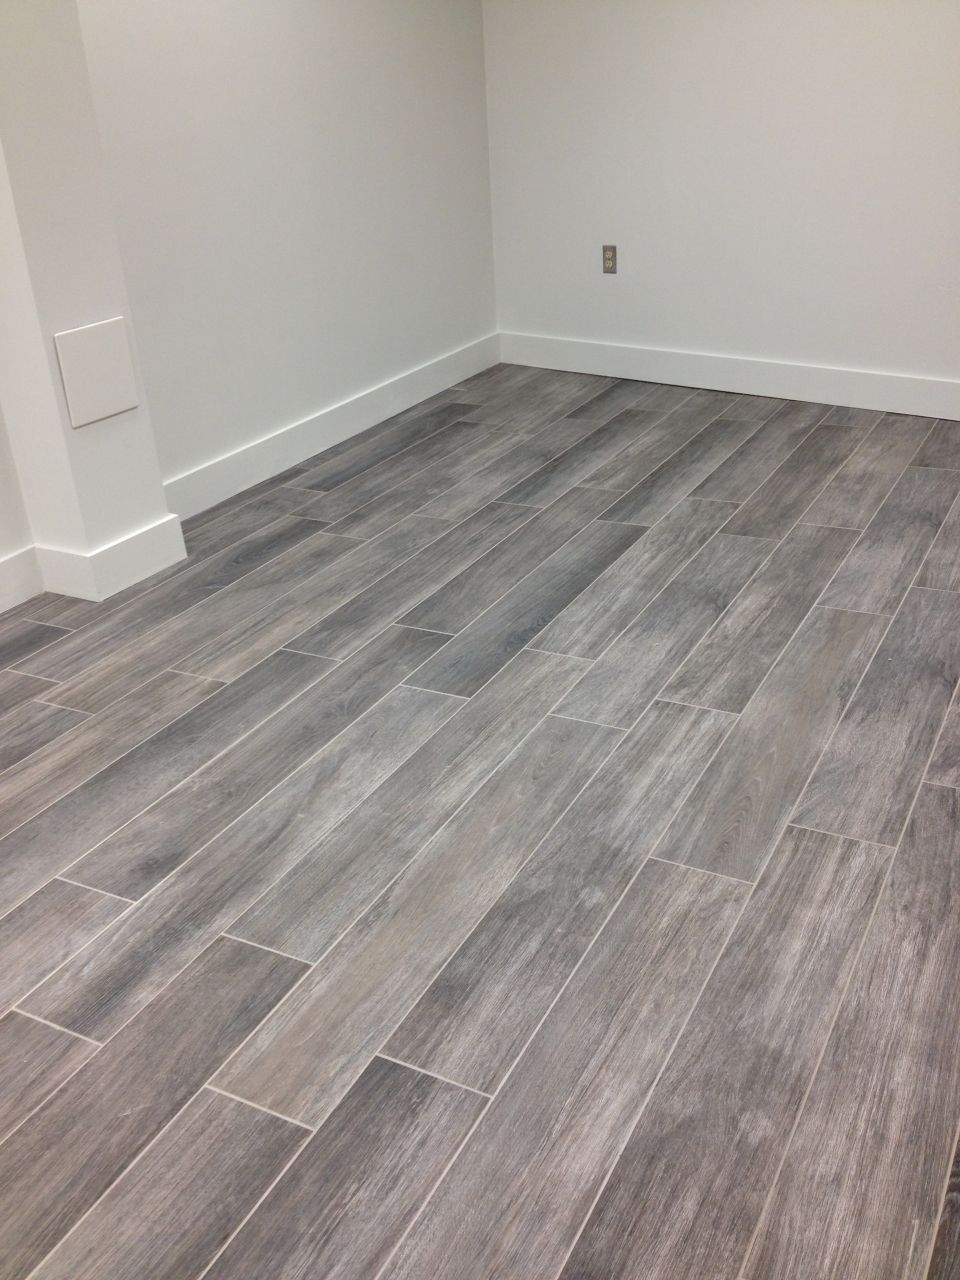 Reasons That Make Tile Hardwood Floor A Better Alternative Than Hardwood Floors Anlamli Net In 2020 Grey Wood Tile Gray Wood Tile Flooring Flooring